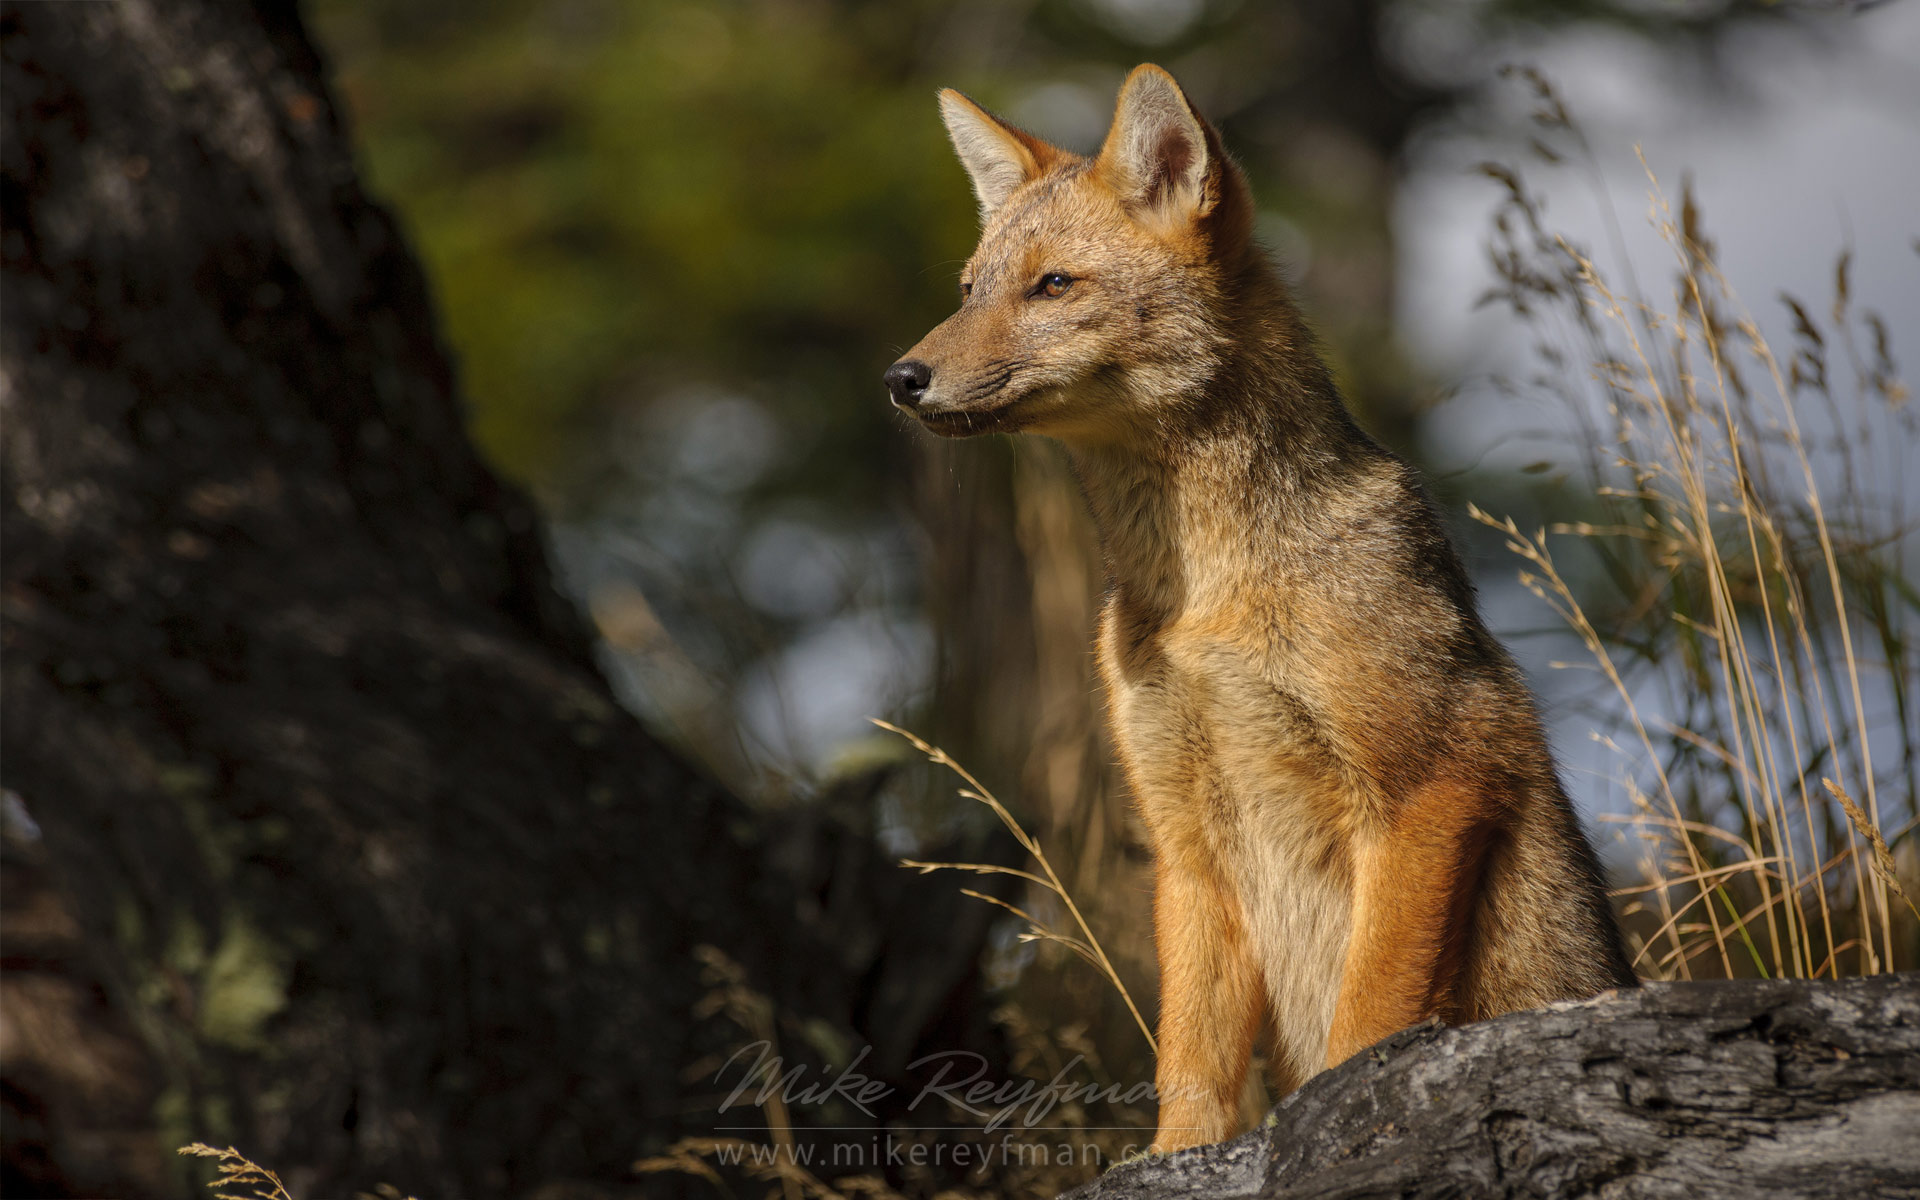 Young Patagonian Red Fox (Lycalopex culpaeus). Torres del Paine National Park, Magallanes and Antartica Chilena Region XII, Patagonia, Chile. - Patagonia-Wildlife-and-Horses - Mike Reyfman Photography